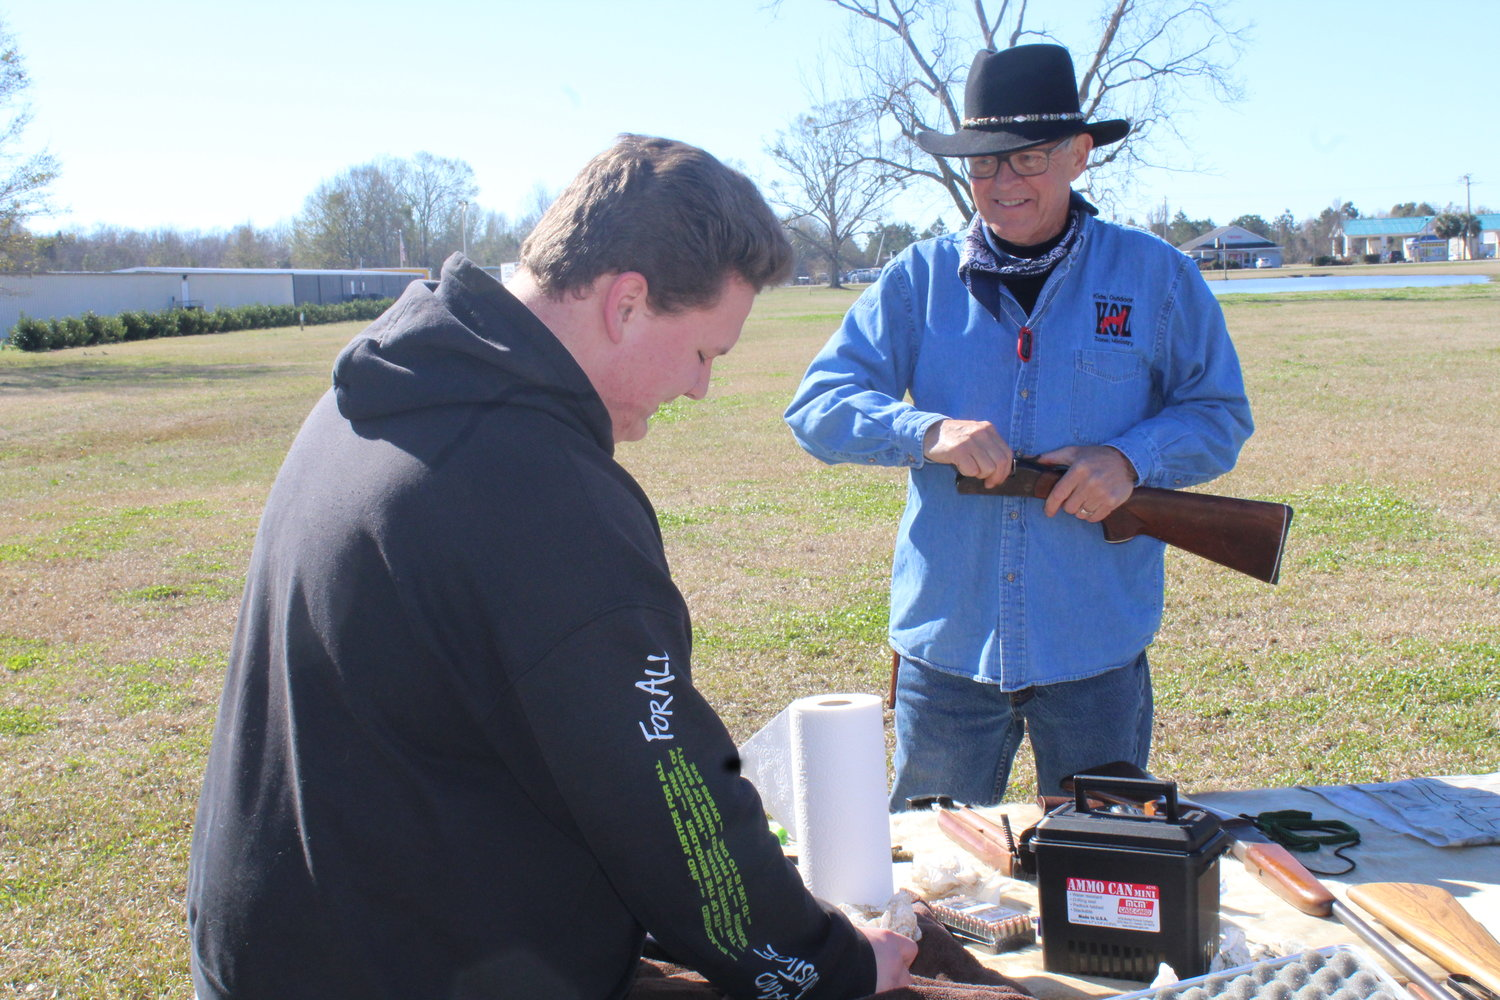 Ronnie Hall, who helped bring the Kids Outdoor Zone program to FBC-Robertsdale, teaches proper gun cleaning techniques.